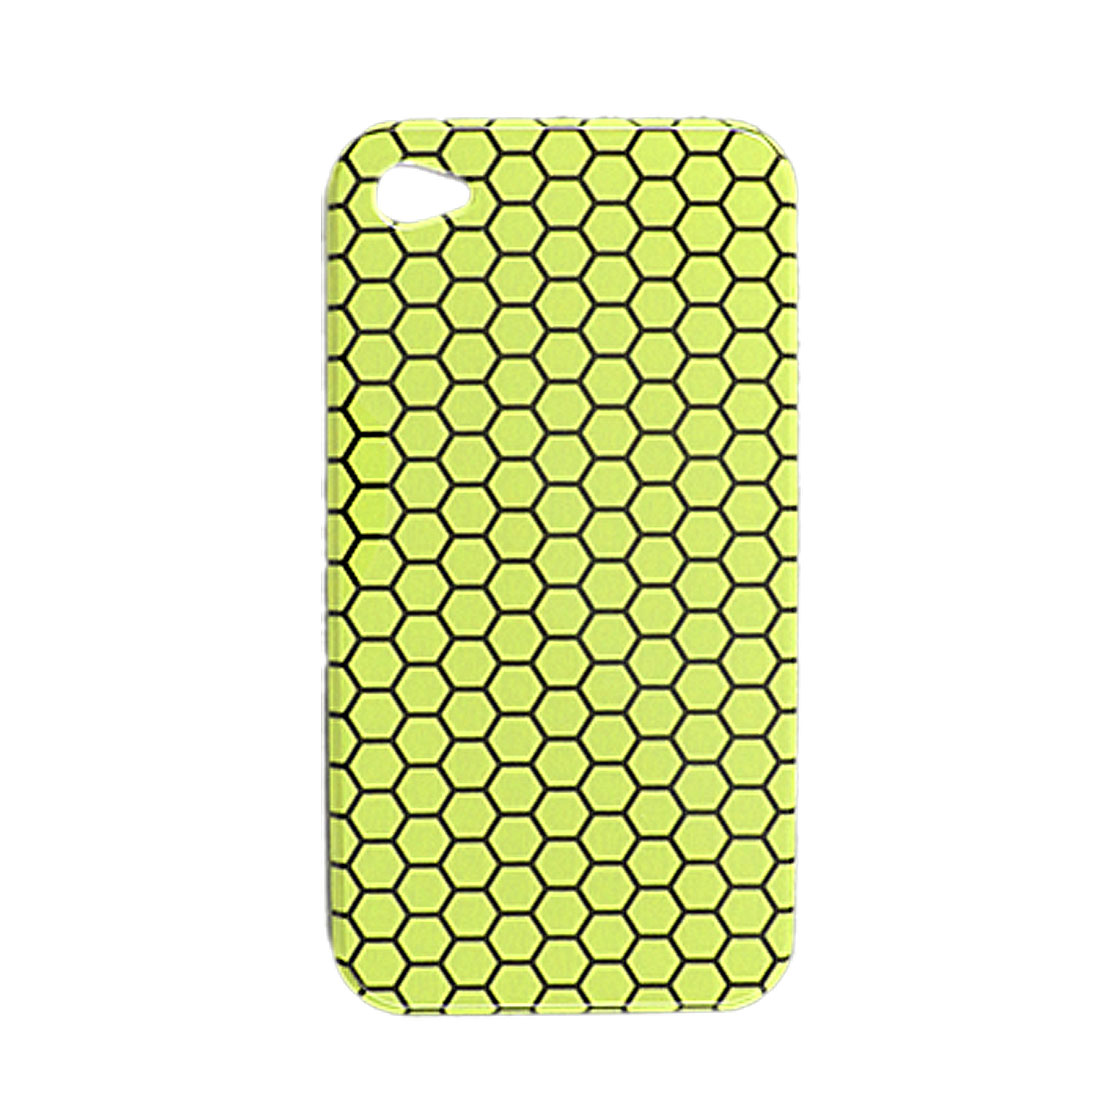 Black Hexagonal Yellow Back Case for Apple iPhone 4 4G